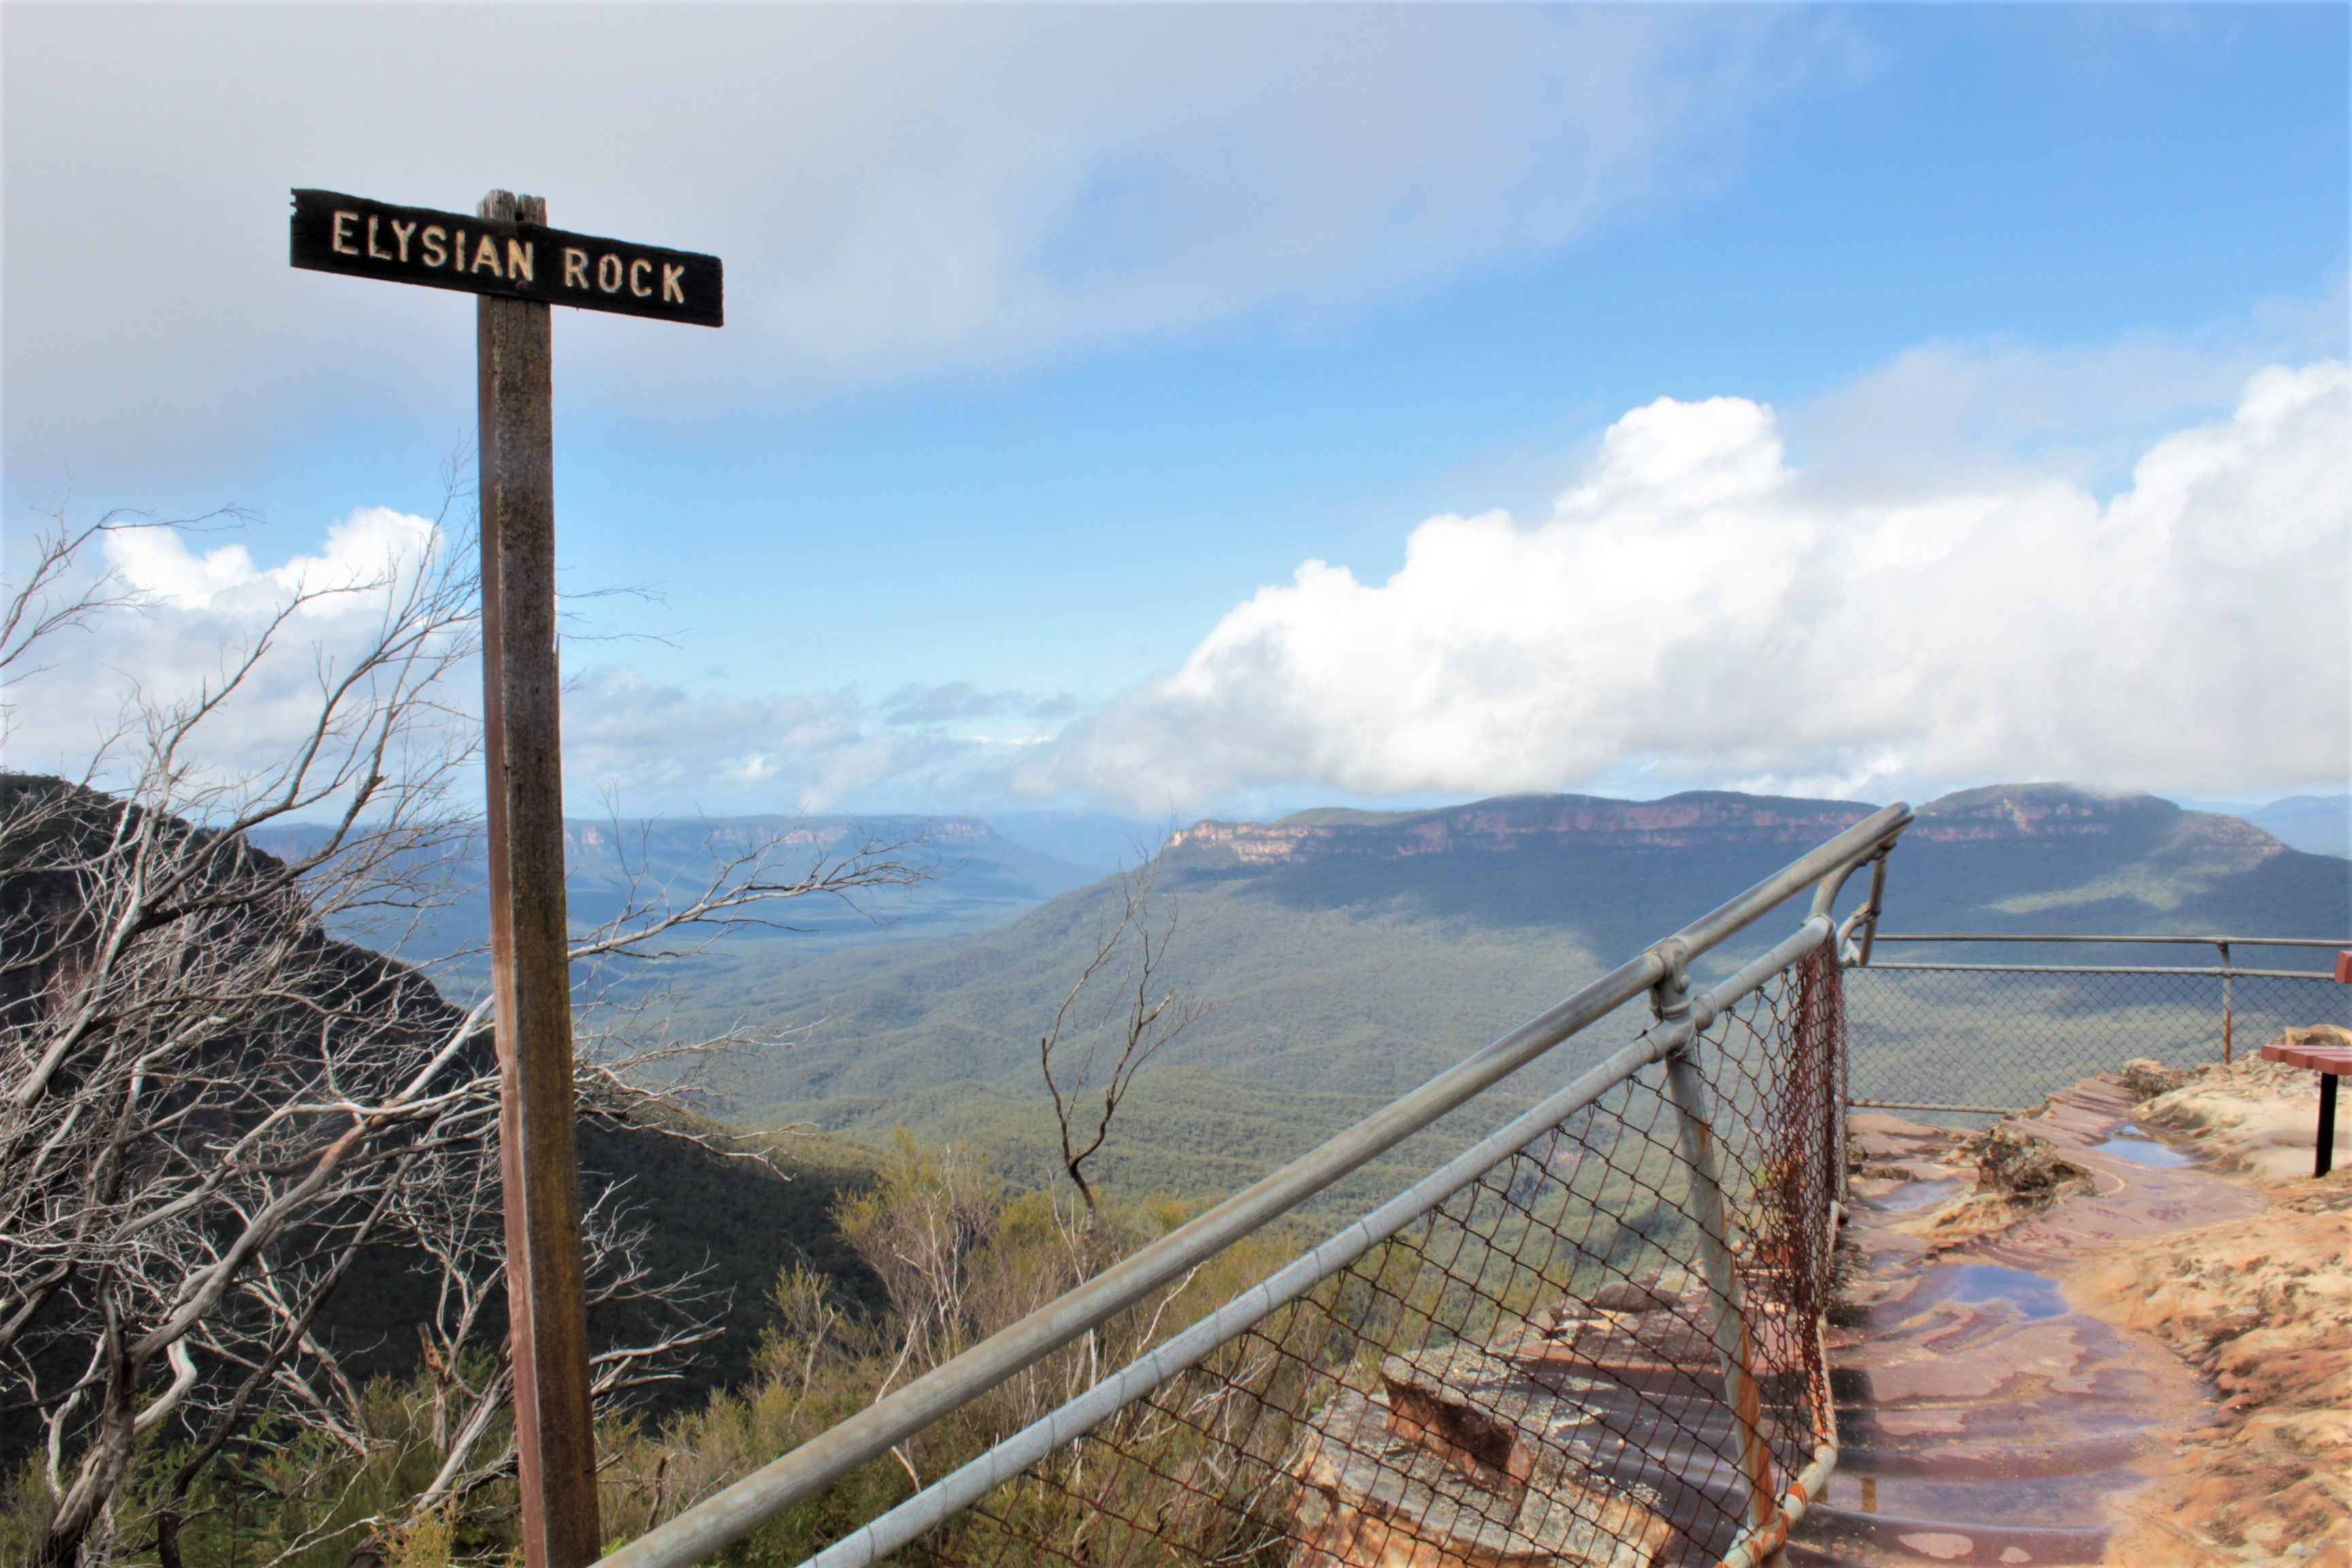 Find out why Australia makes the perfect walking holiday. An overview of hiking in Australia: from bush tracks in national parks to coastal tracks with stunning sea views.